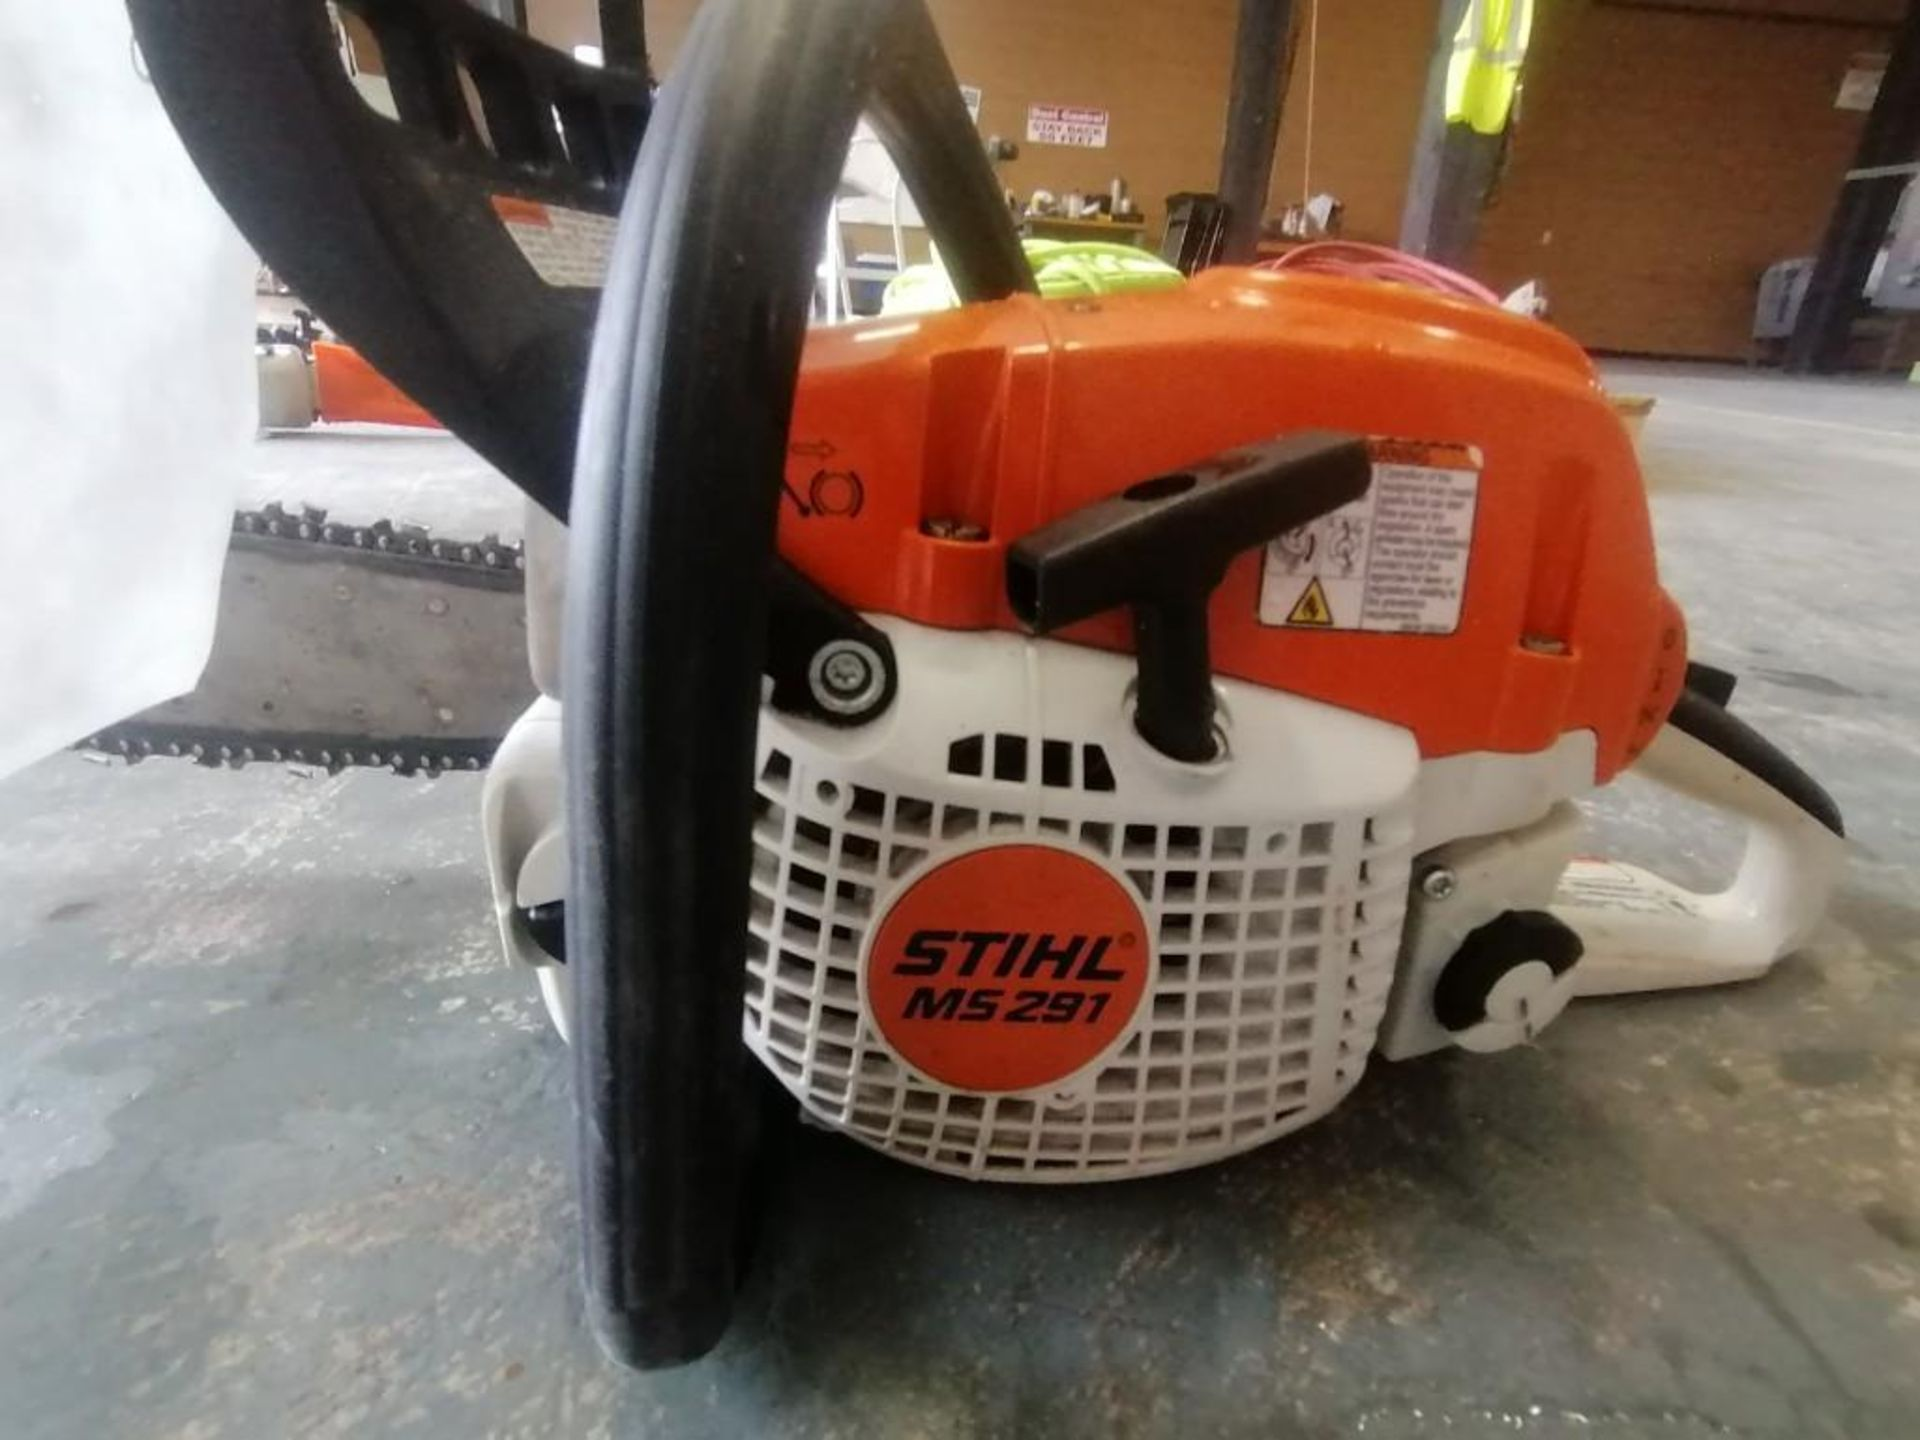 Lot 16 - (1) Stihl MS291 Chainsaw. Located at 301 E Henry Street, Mt. Pleasant, IA 52641.